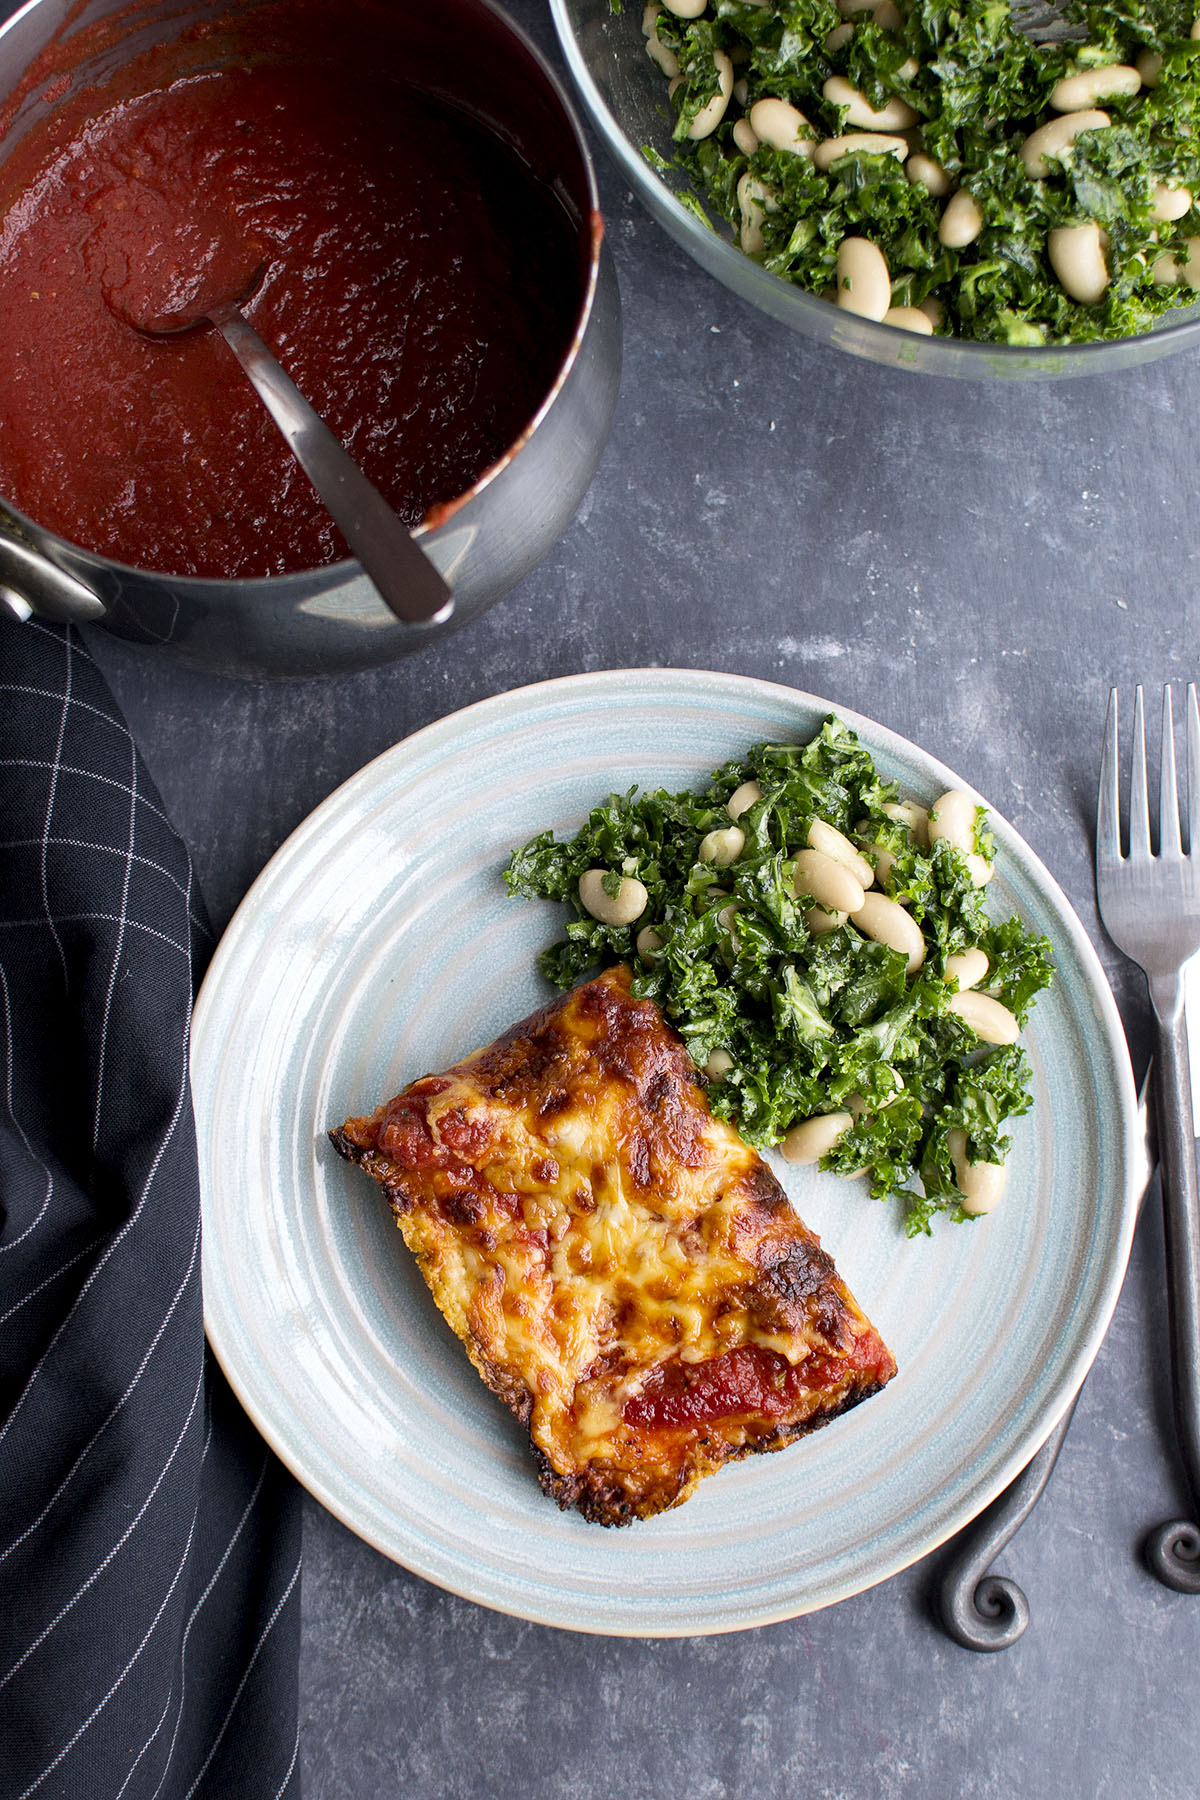 Blue plate with Detroit Style pizza slice and green salad